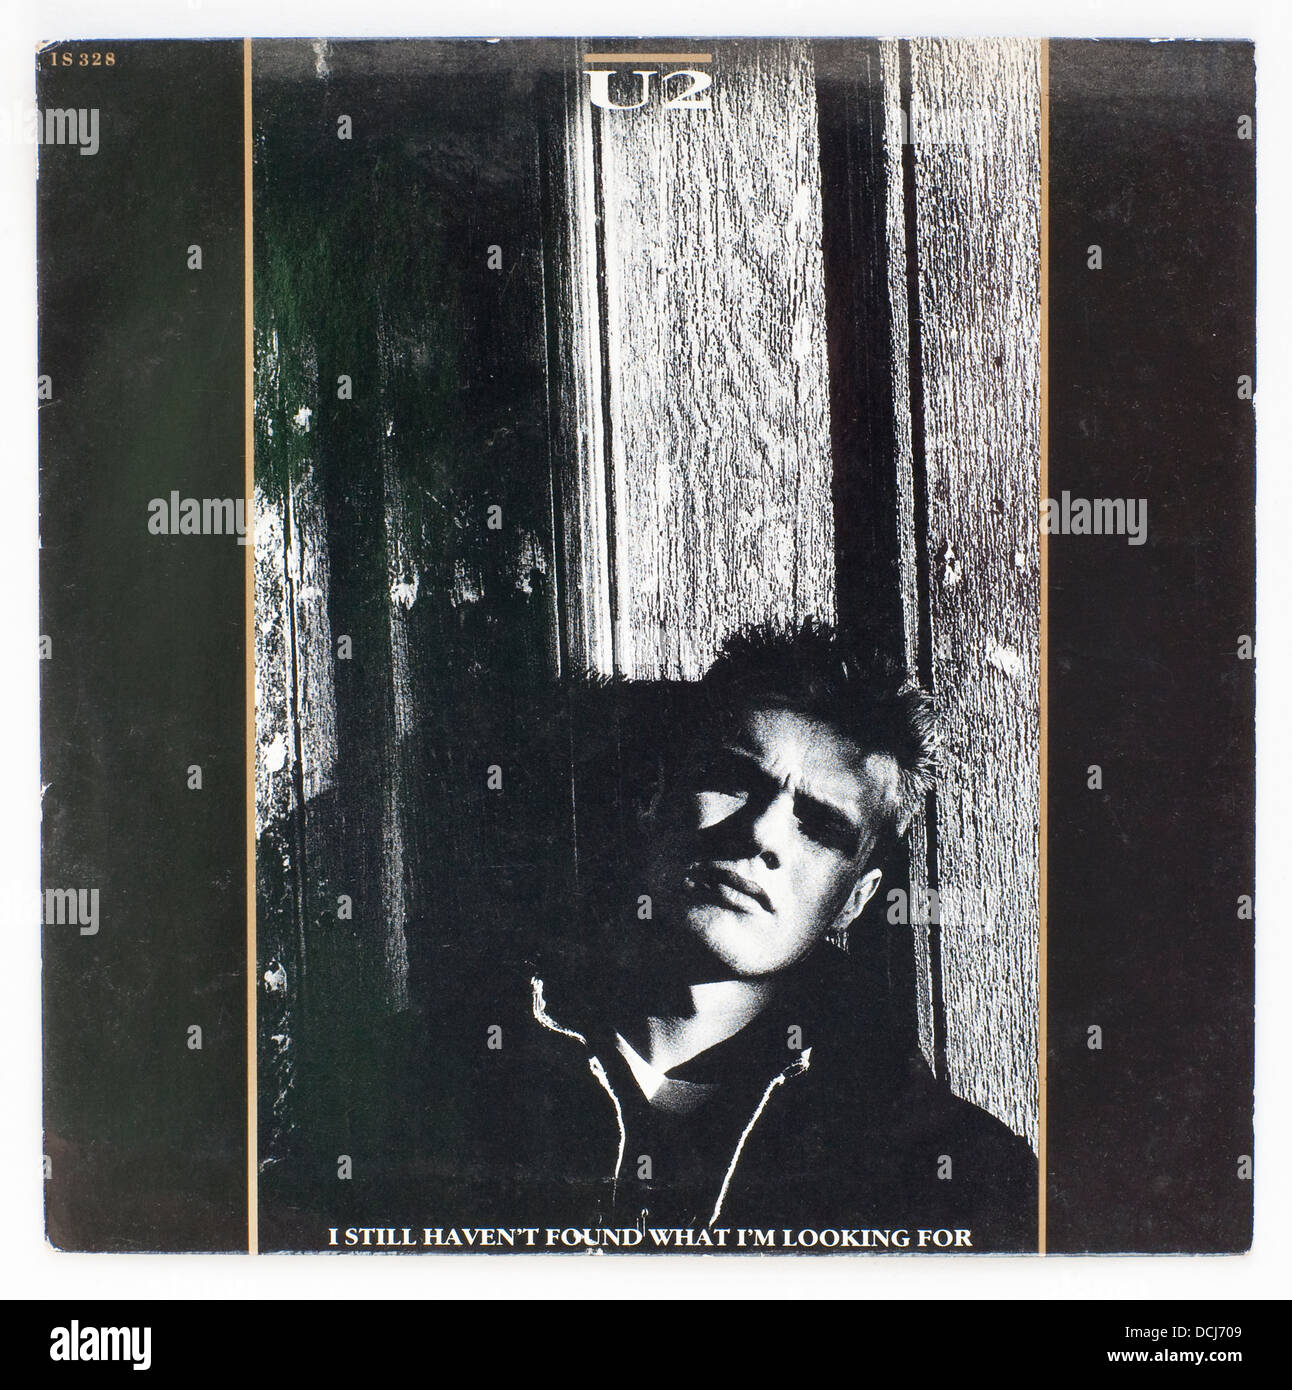 U2 - I Still haven't Found What I'm Looking For 1987 picture cover single on Island Records - Stock Image